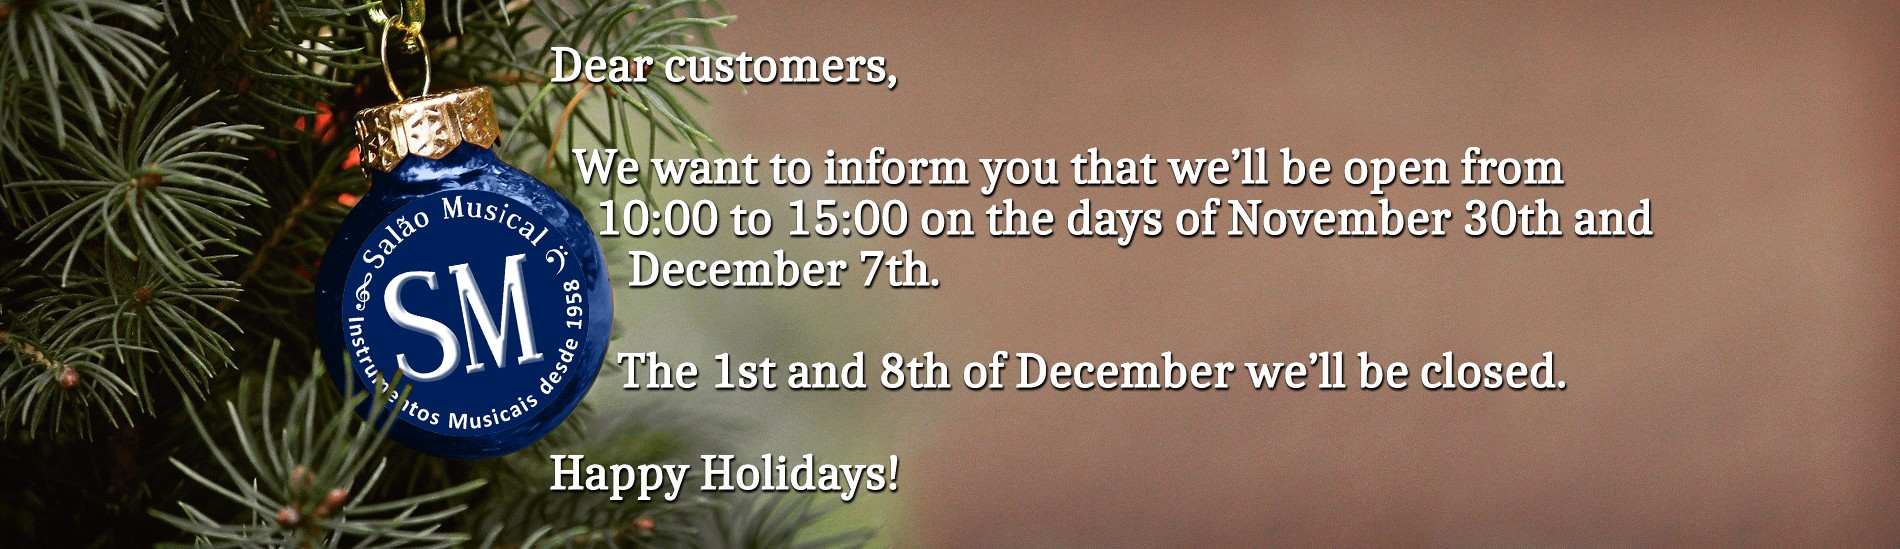 Notice! We'll be open from 10:00 to 15:00 on November 30th and December 7th and closed on December 1st and 8th!